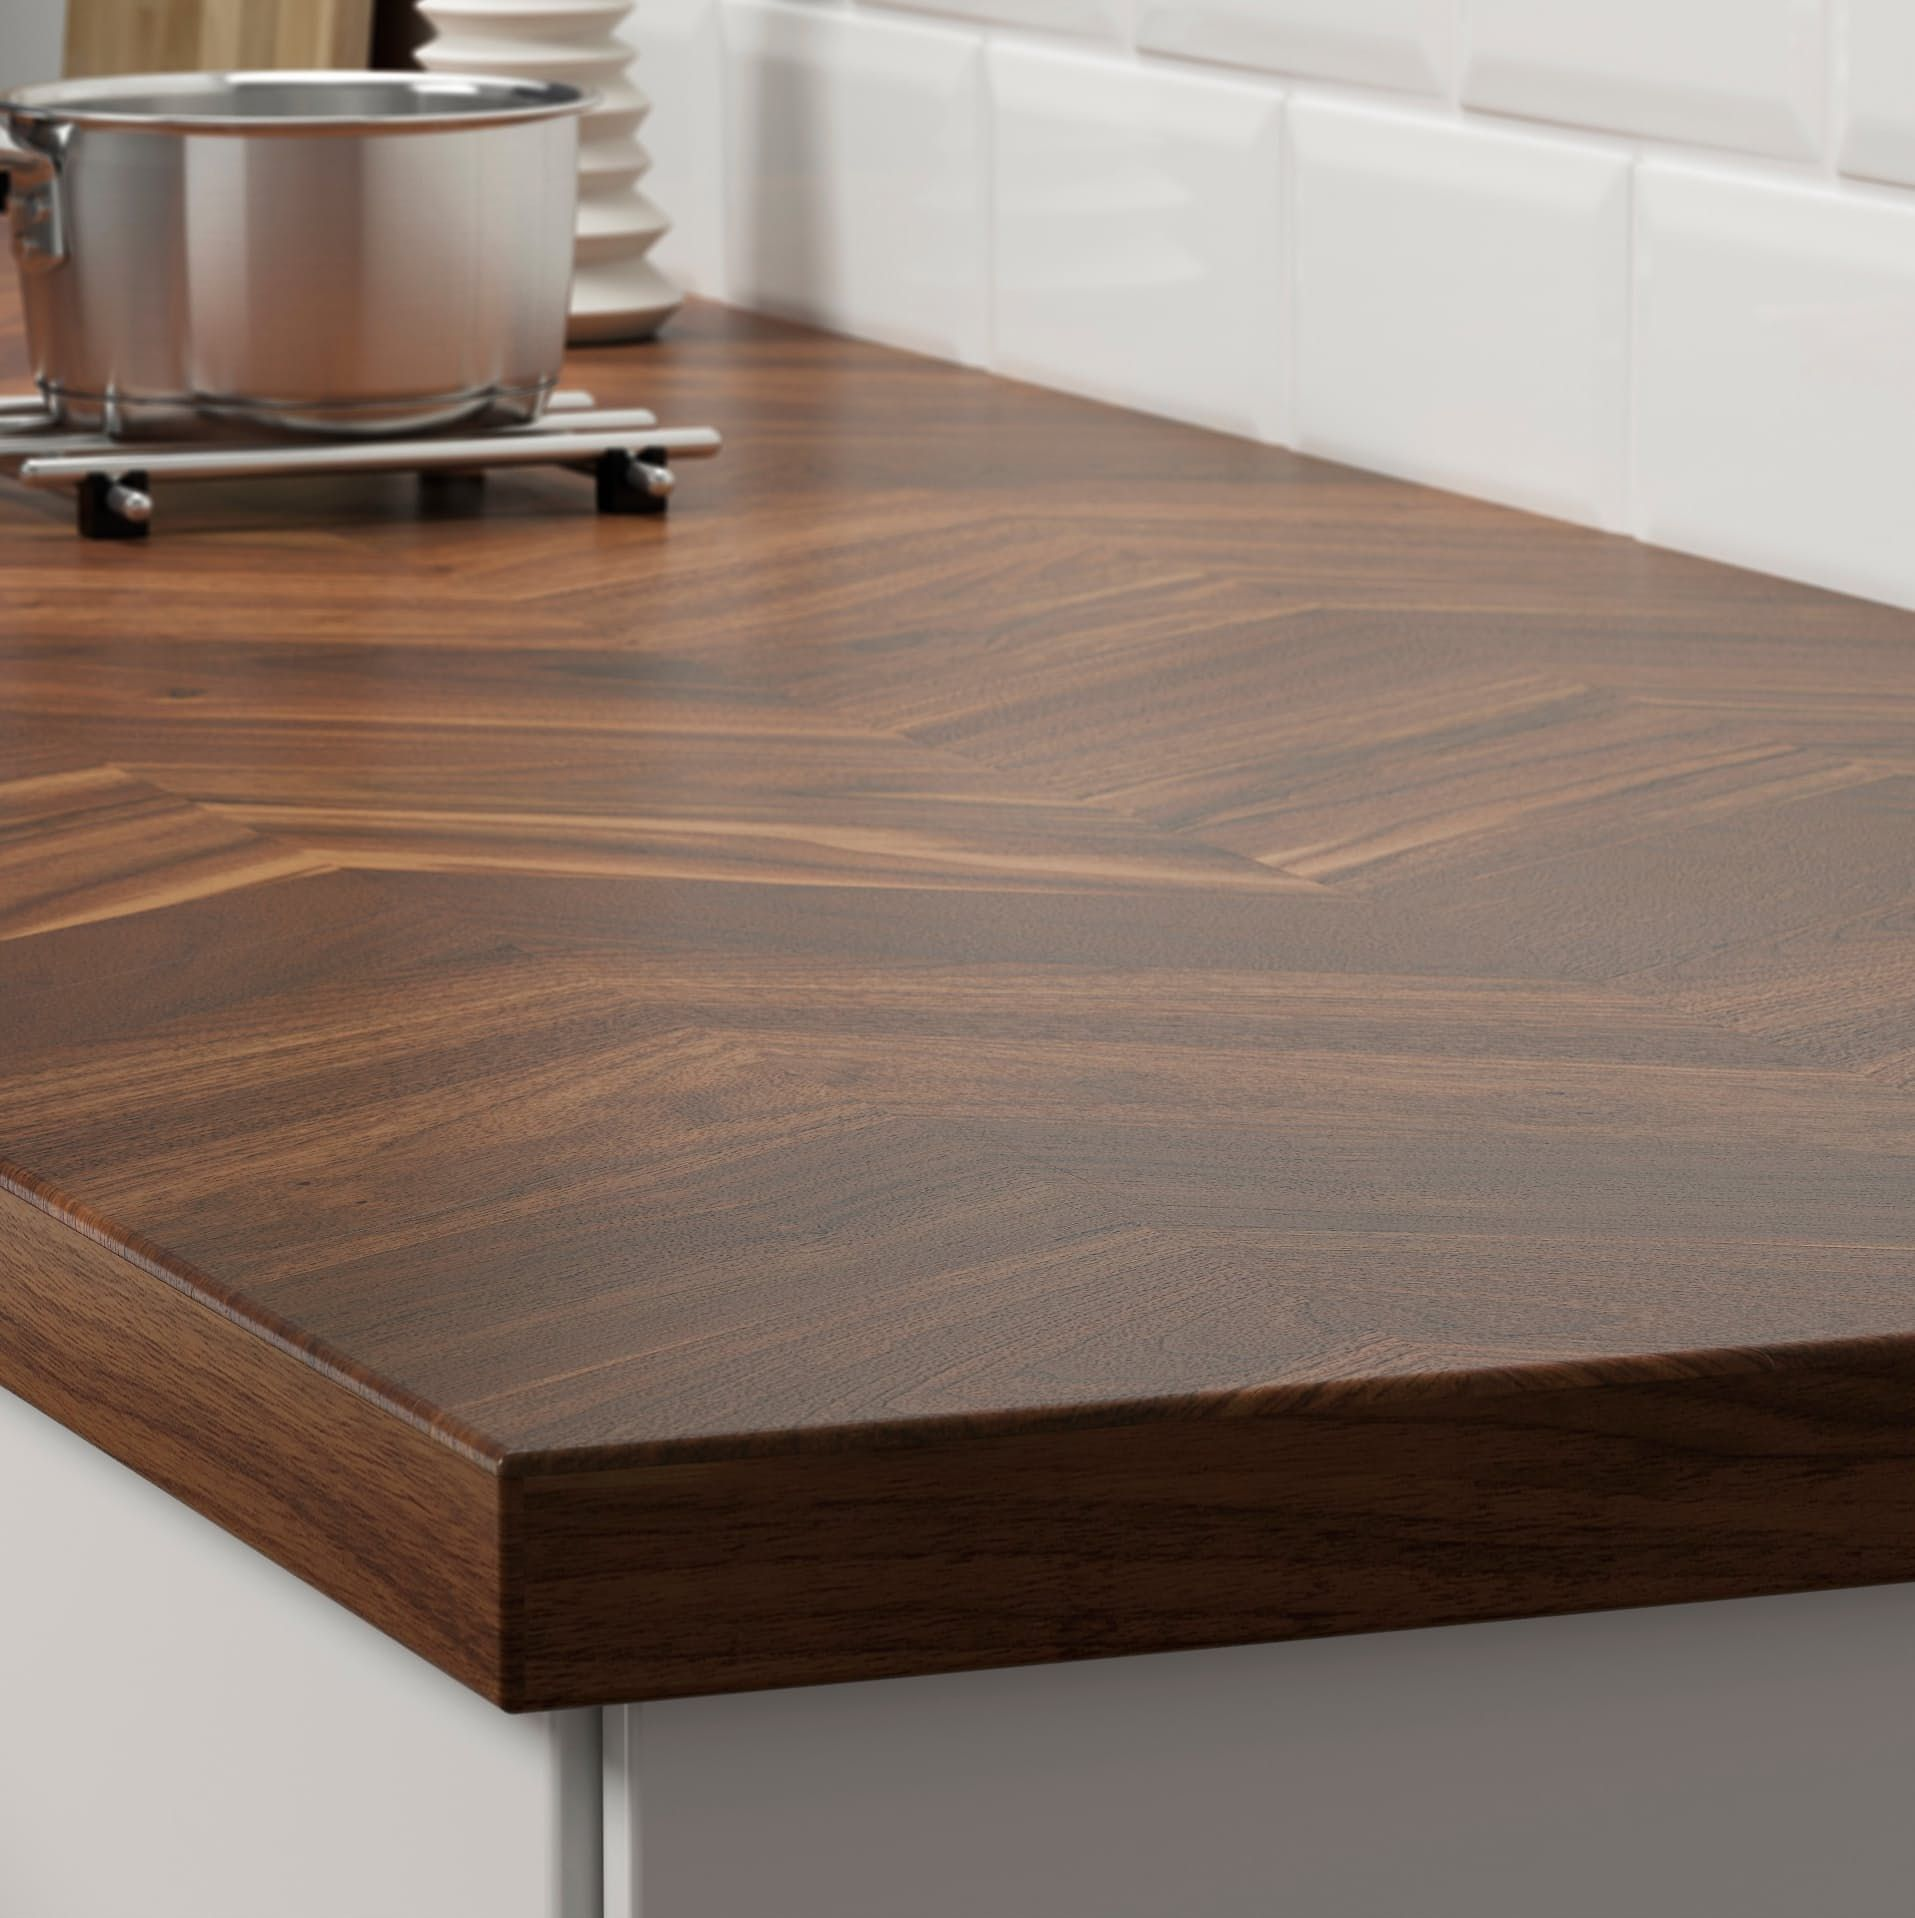 ikea kitchen counters faucet with pull out sprayer 9 barkaboda wood countertop hack and